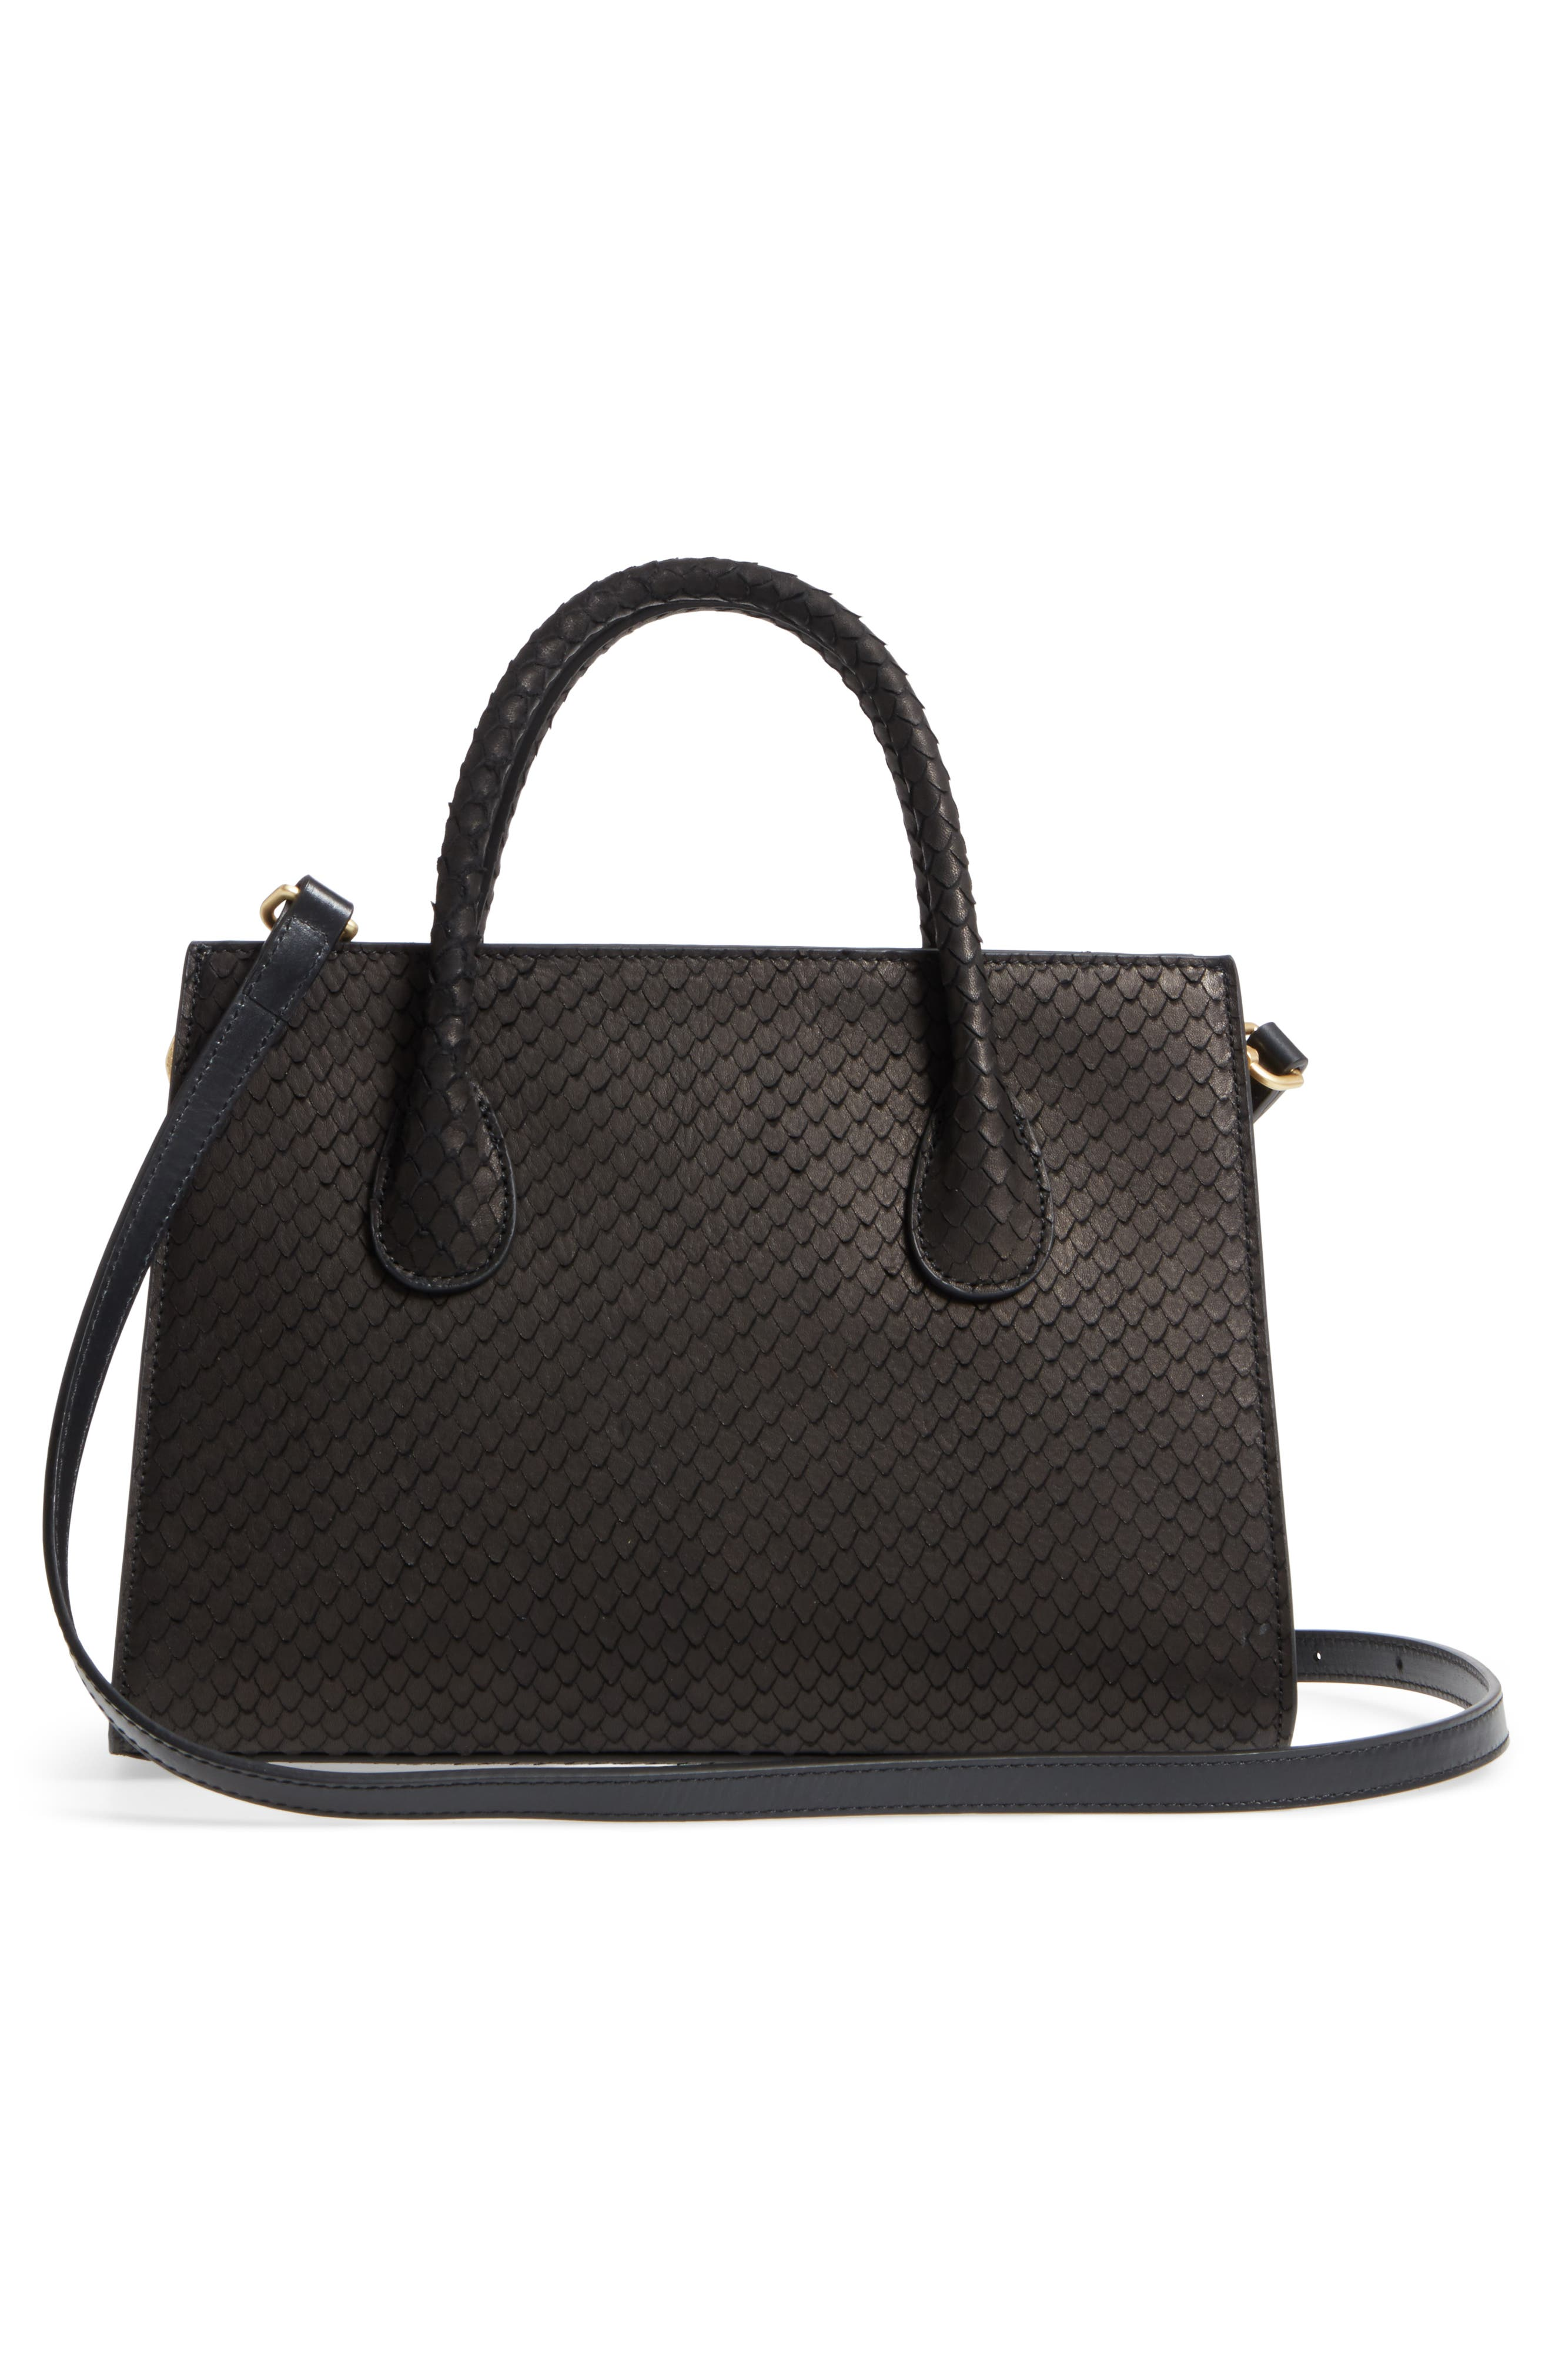 Céline Dion Octave Snake Embossed Leather Satchel,                             Alternate thumbnail 3, color,                             Black Snake